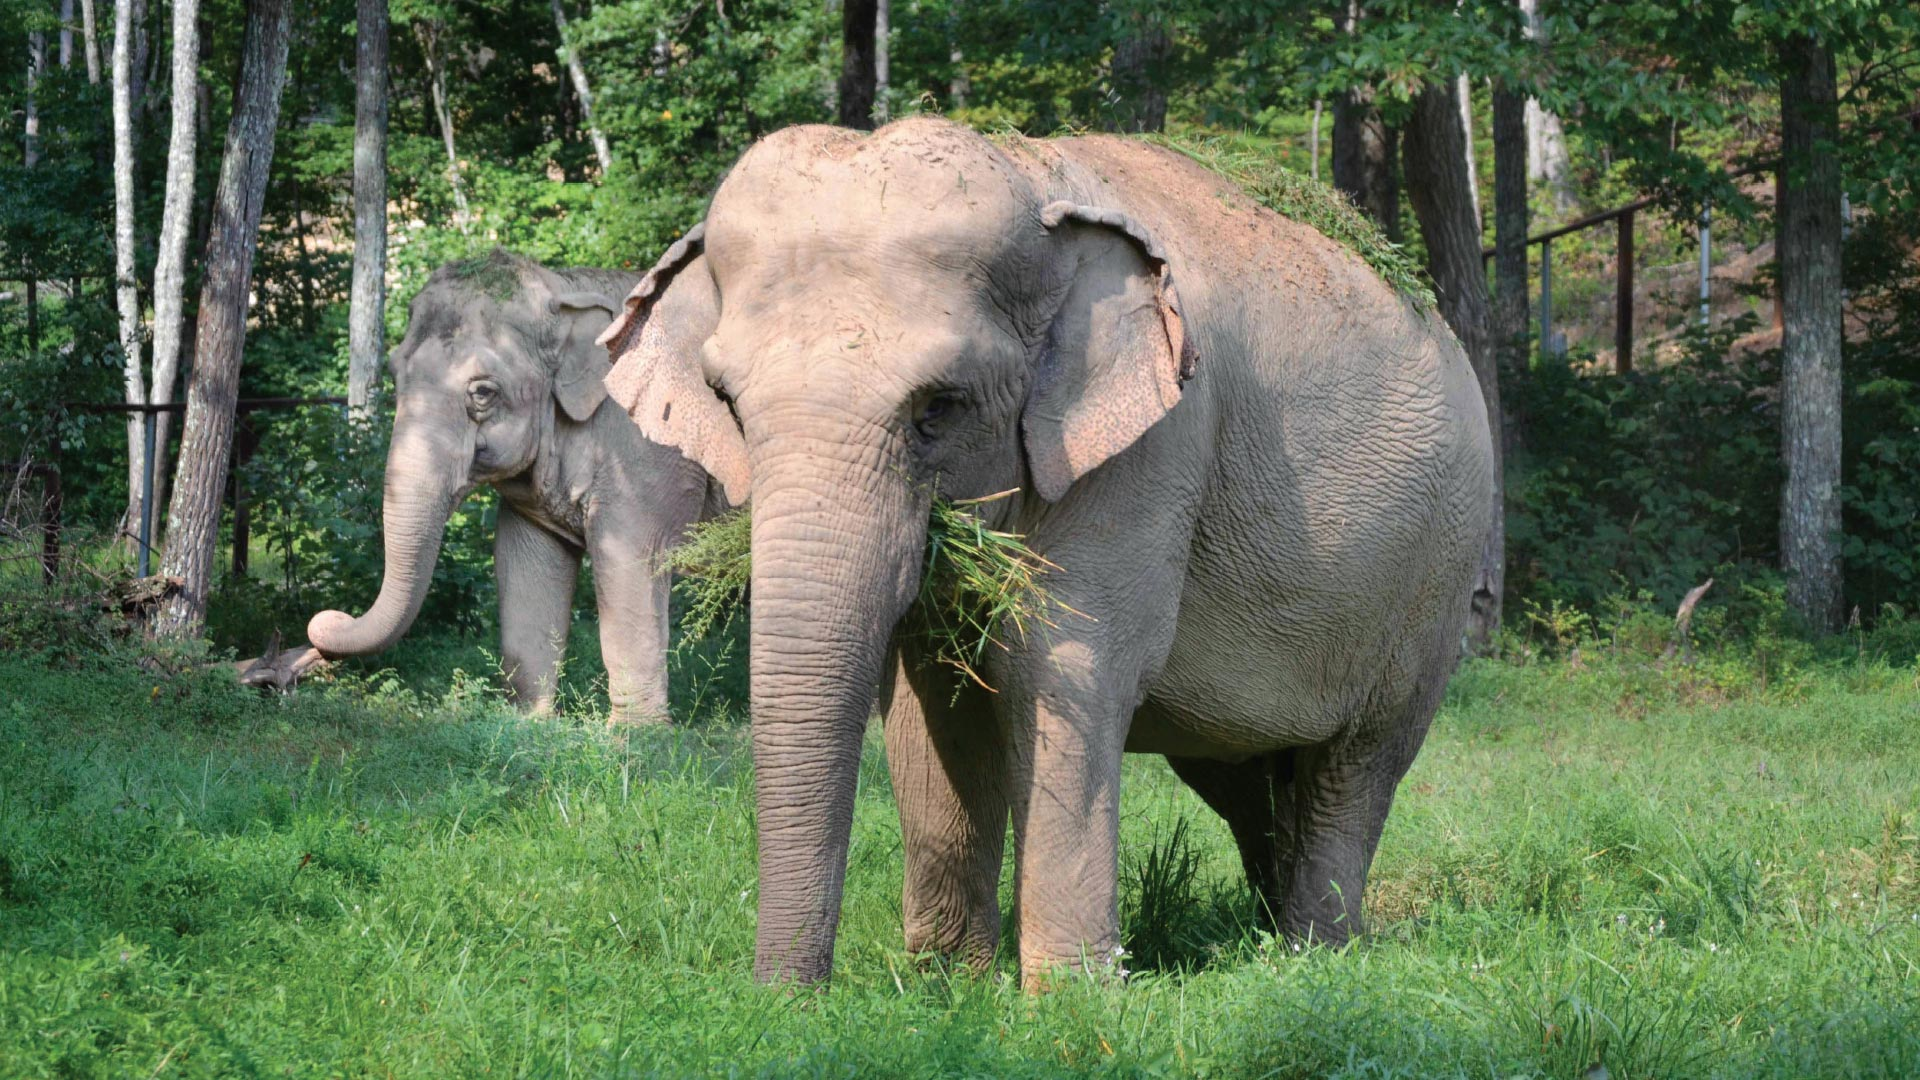 The Elephants of Middle Tennessee